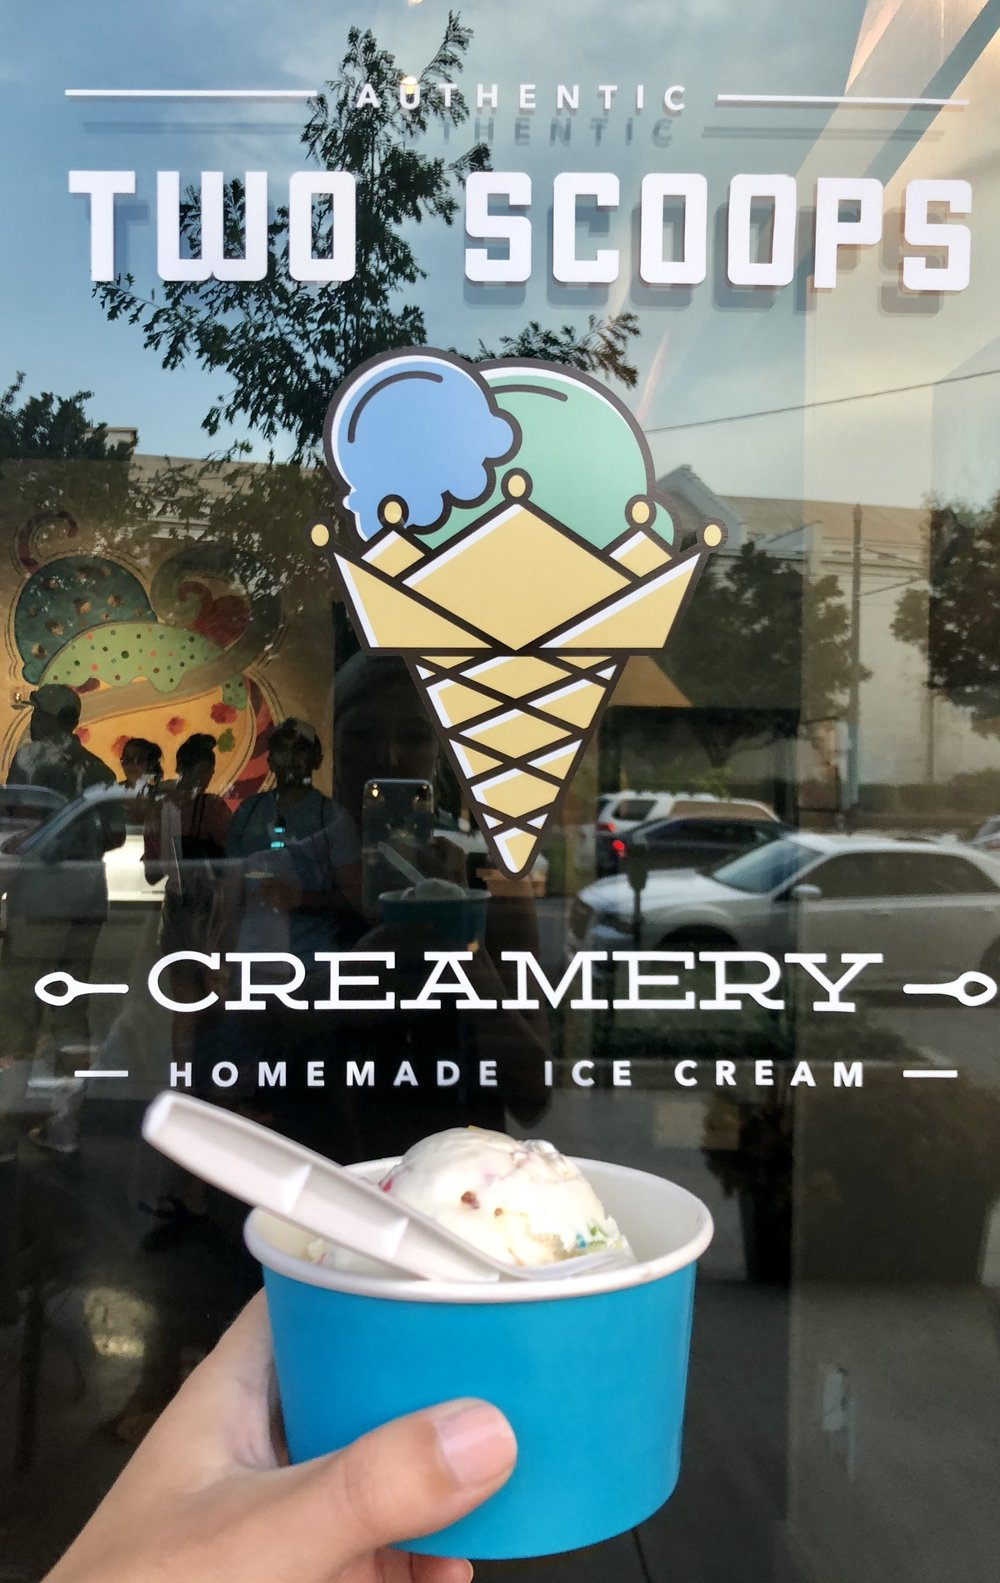 two-scoops-creamery-south-end-charlotte.jpg